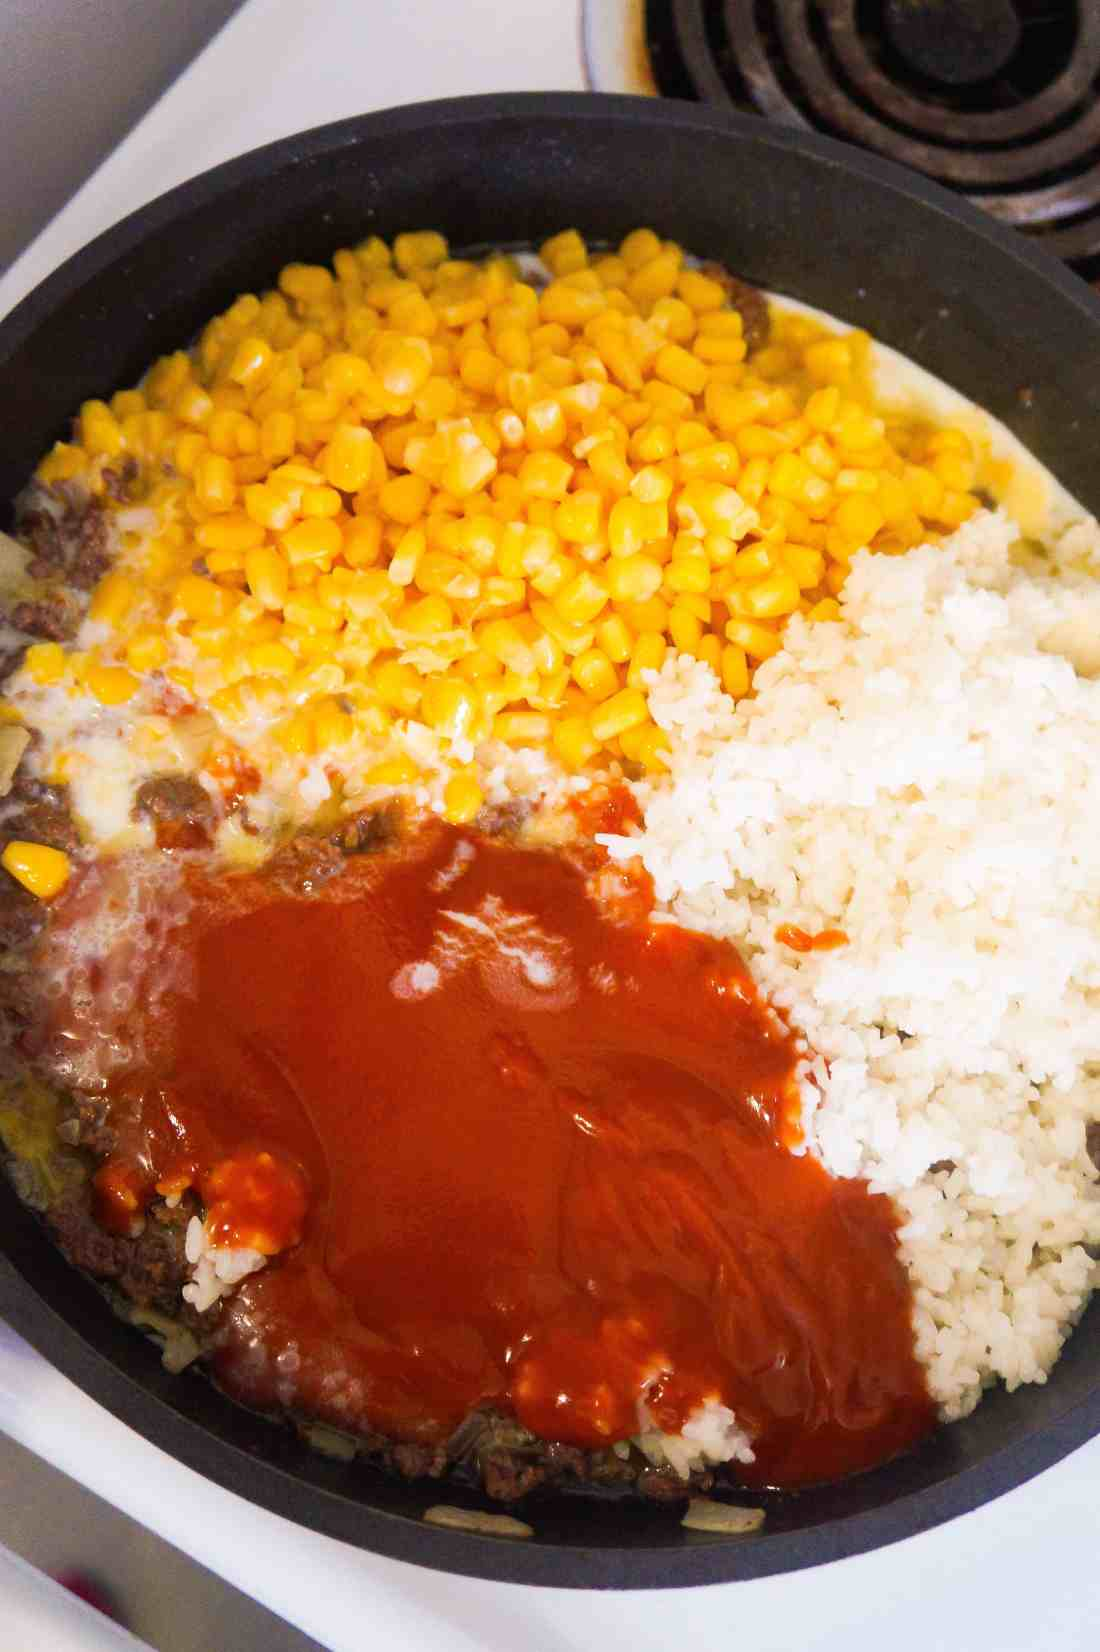 Cheesy Tomato Ground Beef and Rice ingredients in frying pan.